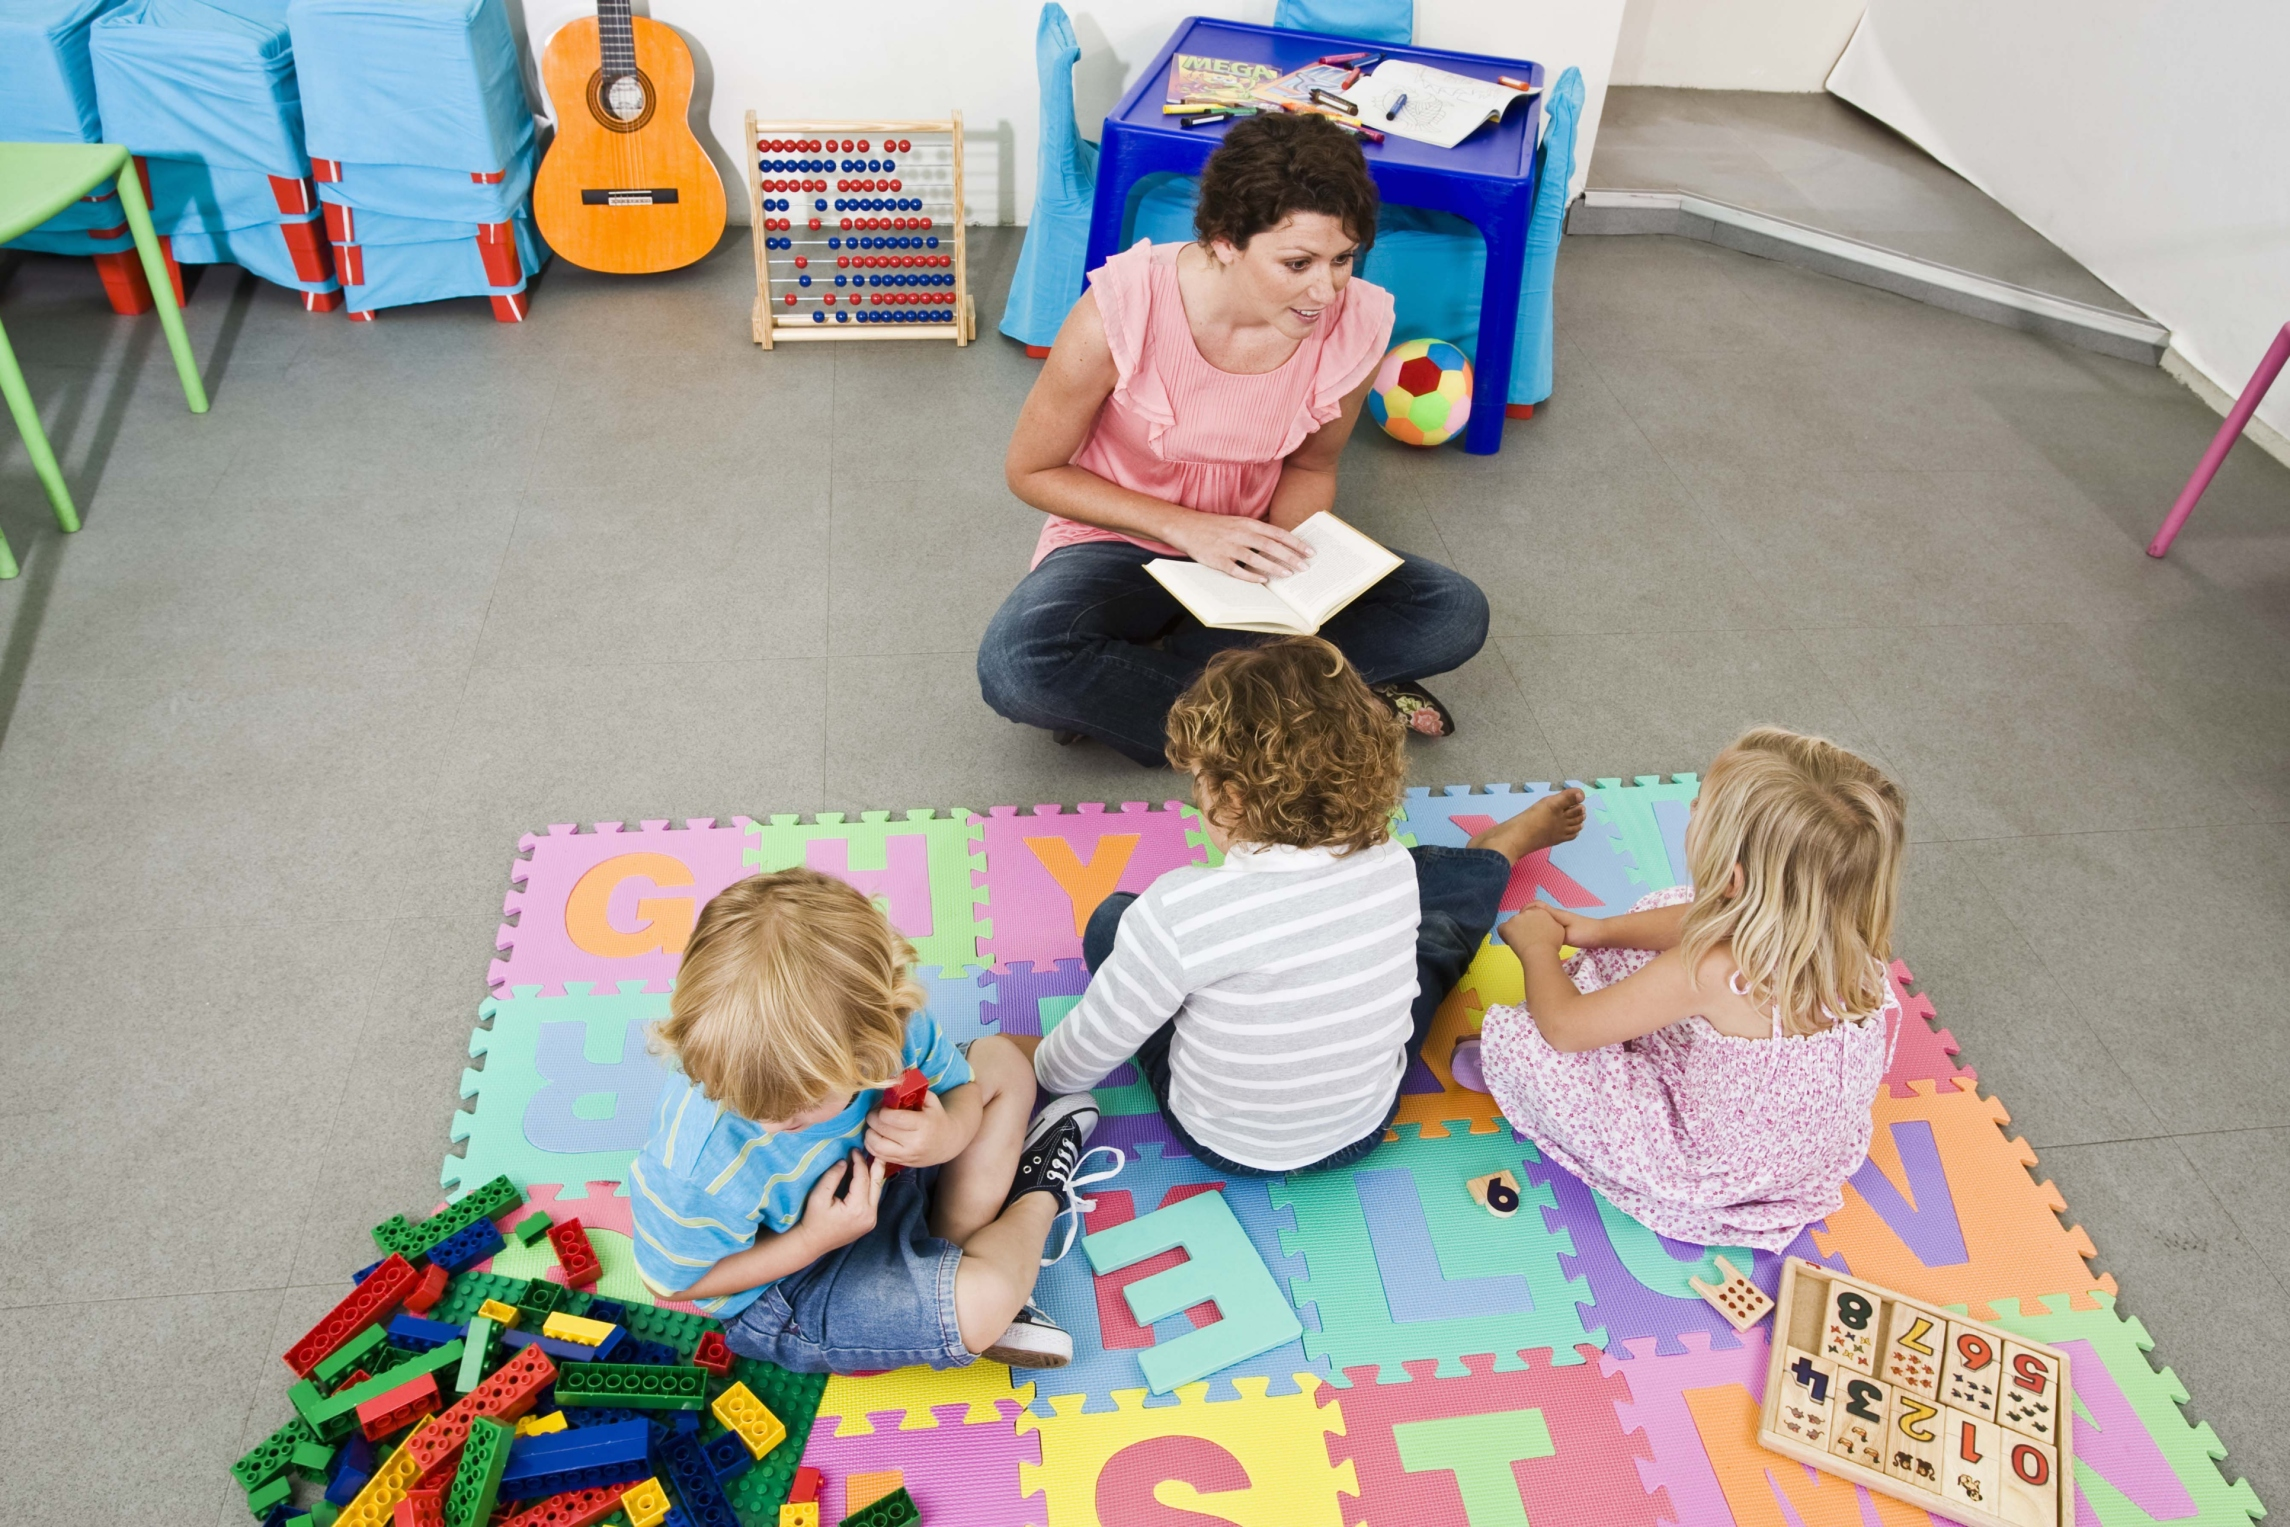 What Operating Funds Are Needed to Start Up a Daycare? | Chron.com